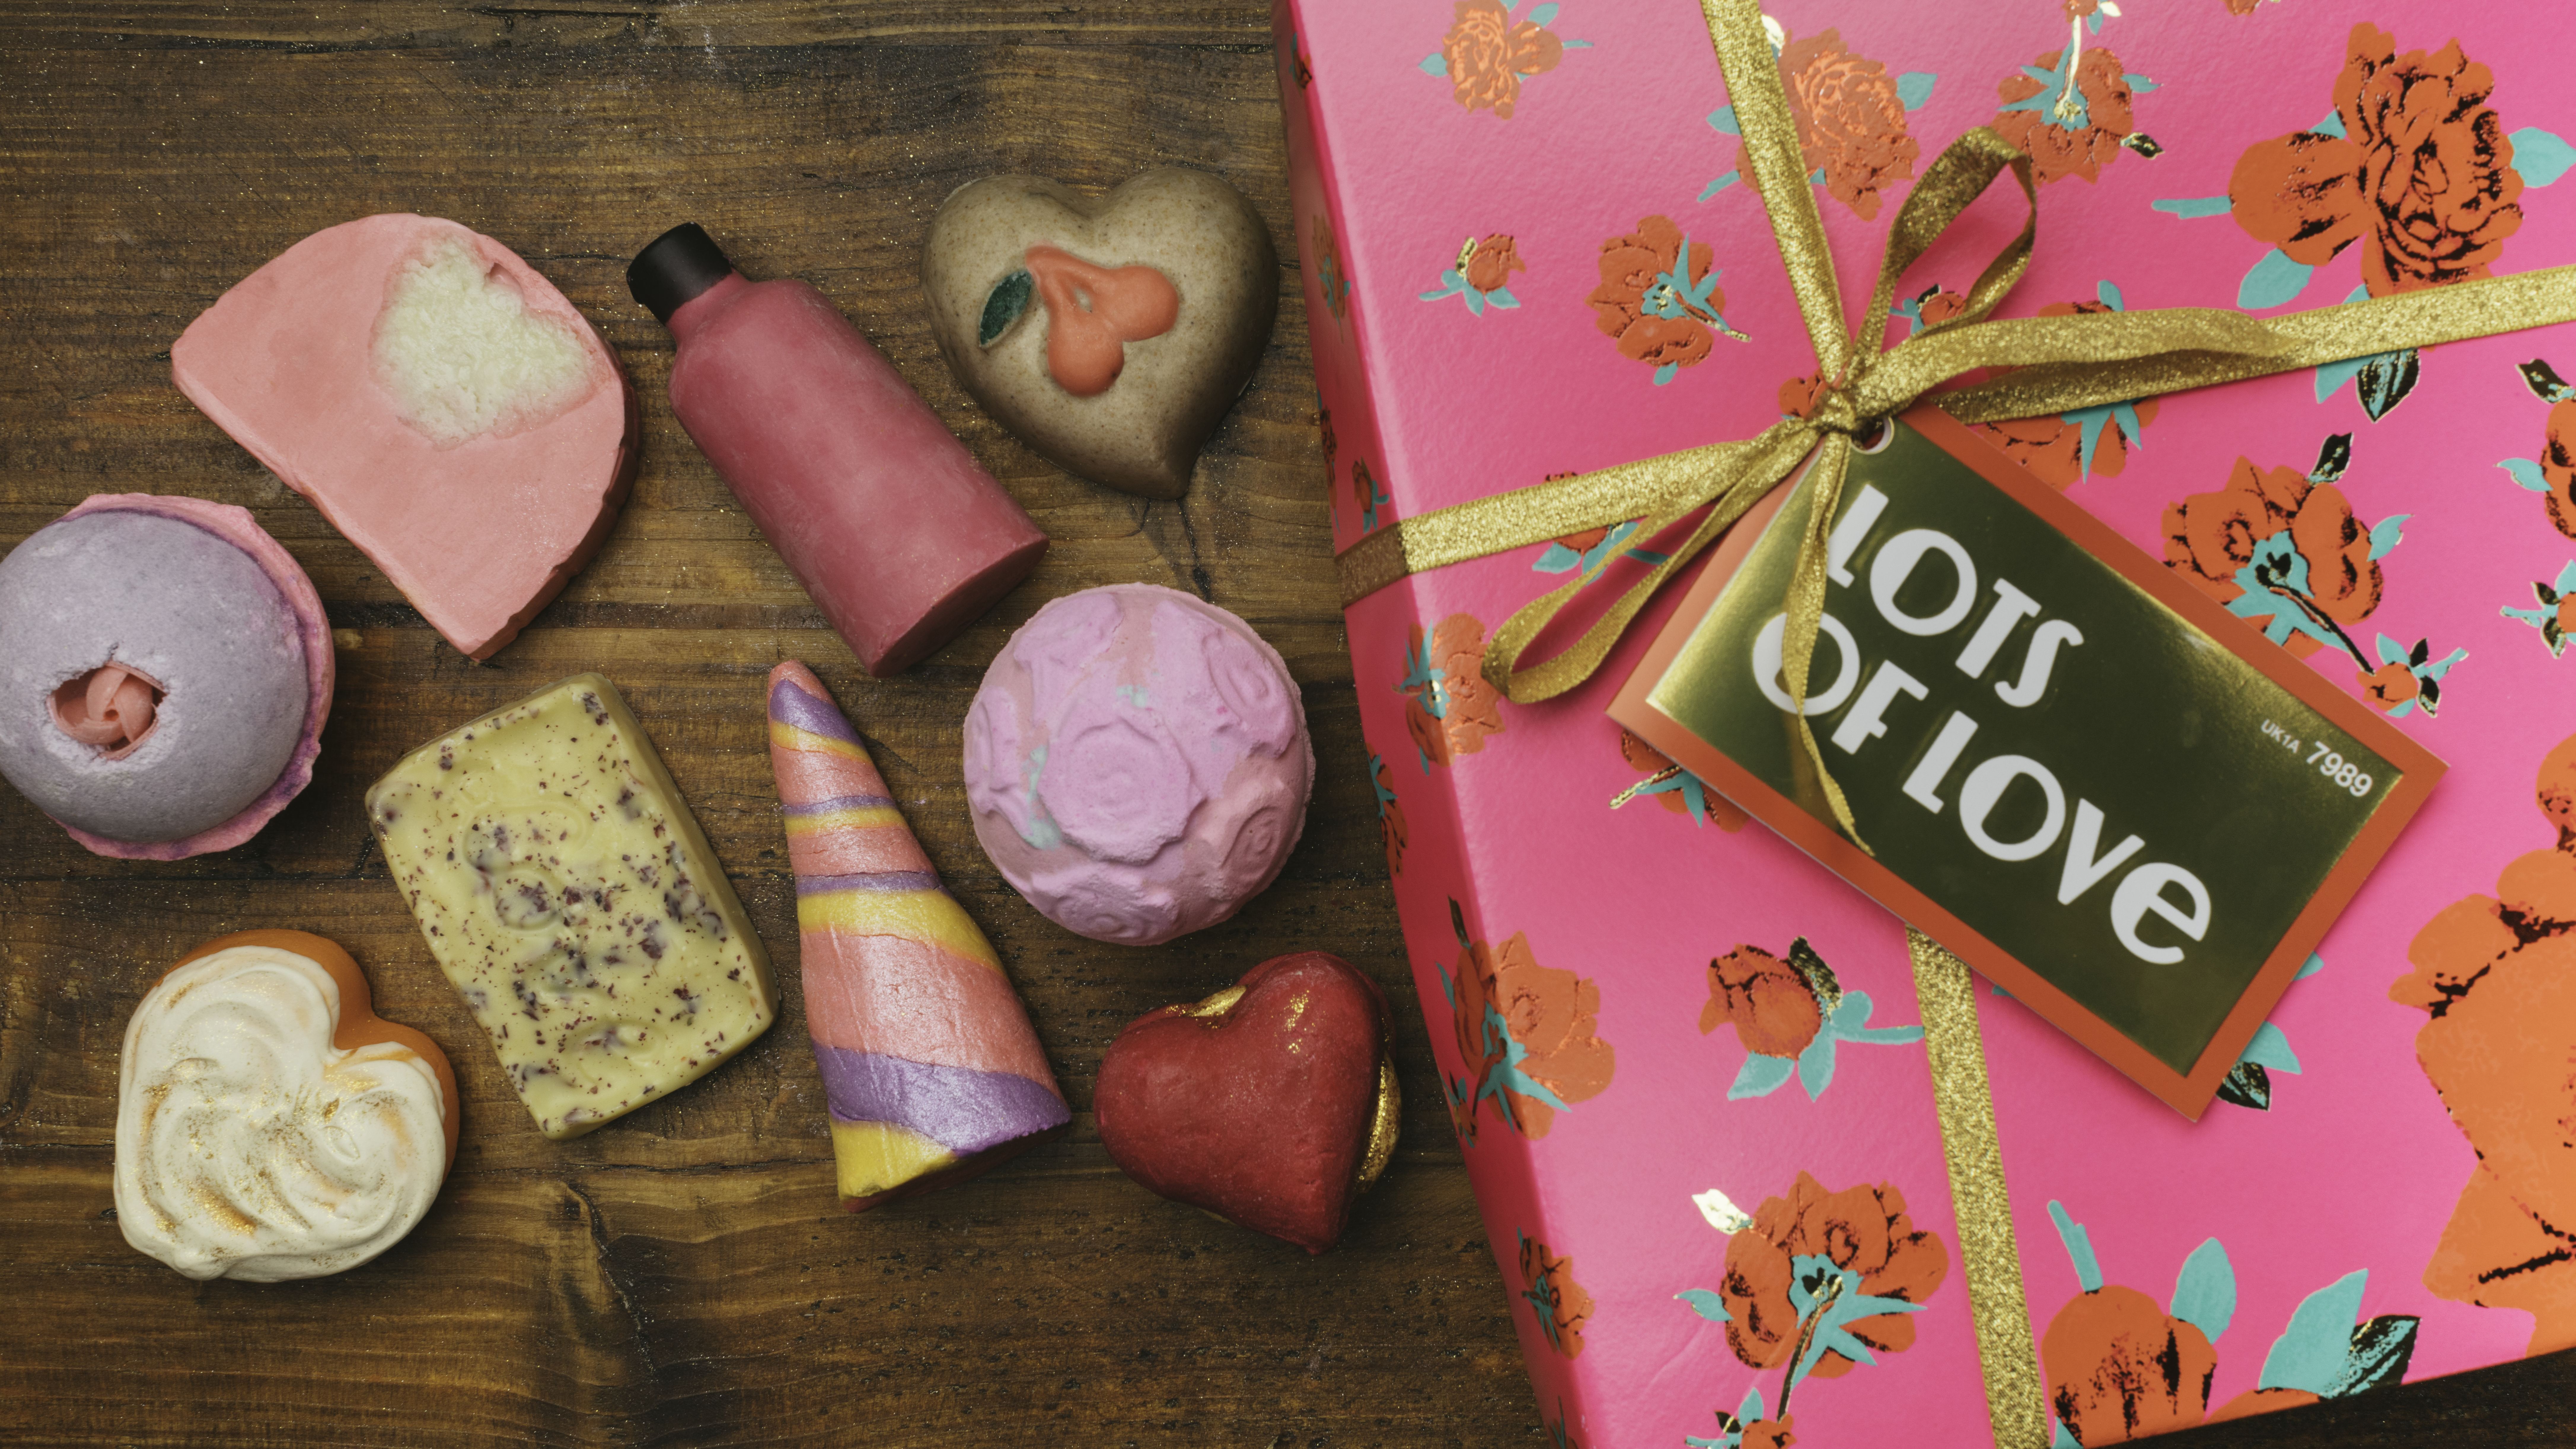 Lots of love gifts over 30 new products valentine gifts lots of love gifts over 30 new products valentine gifts lush fresh handmade cosmetics uk negle Choice Image